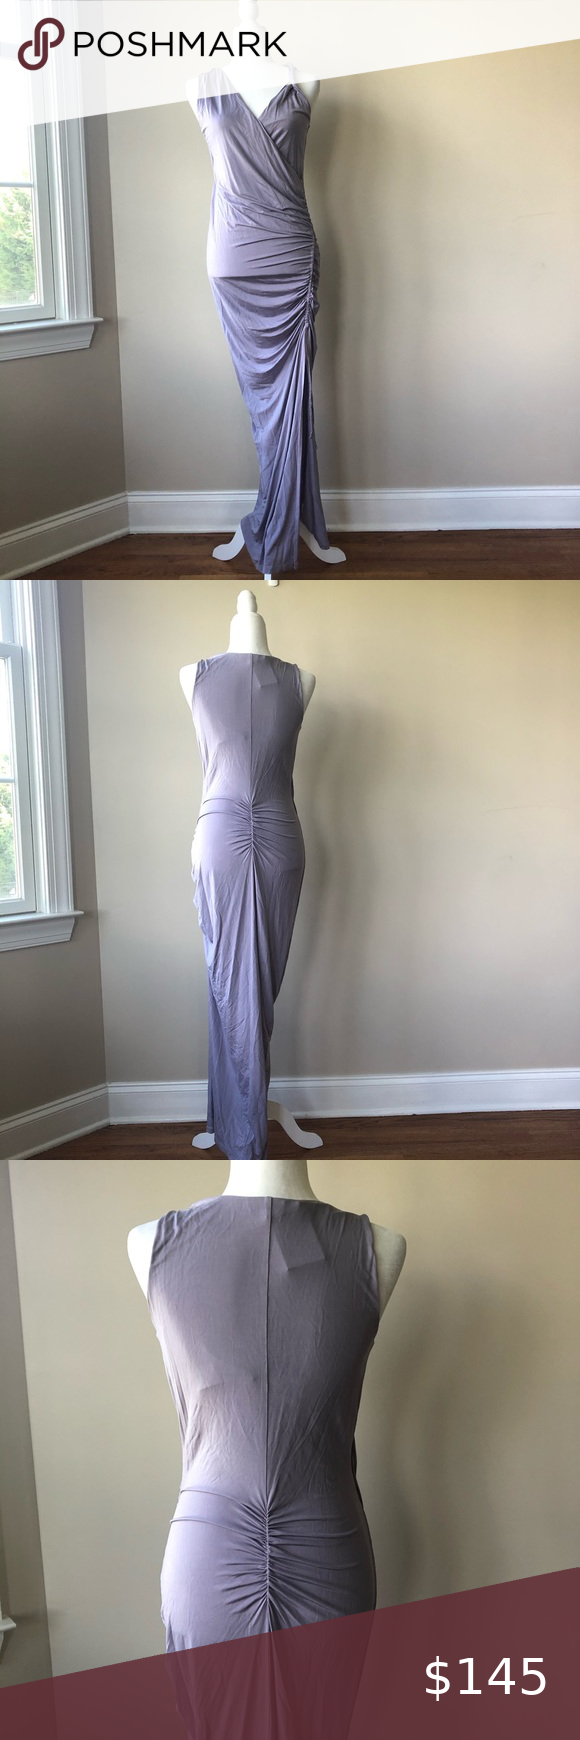 Yfb Paige Maxi Dress Size S In 2020 Dresses Fitted Maxi Dress Maxi Dress